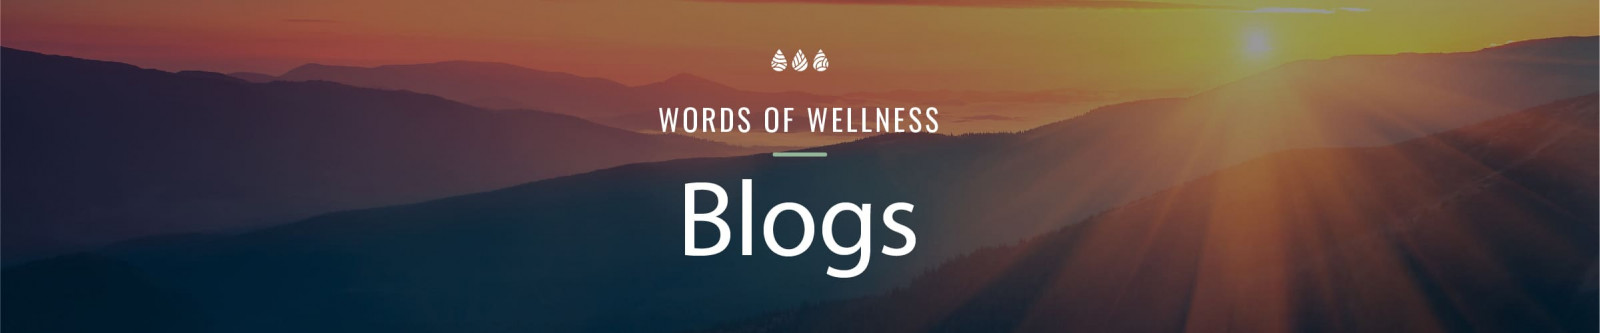 words of wellness words over nature landscape